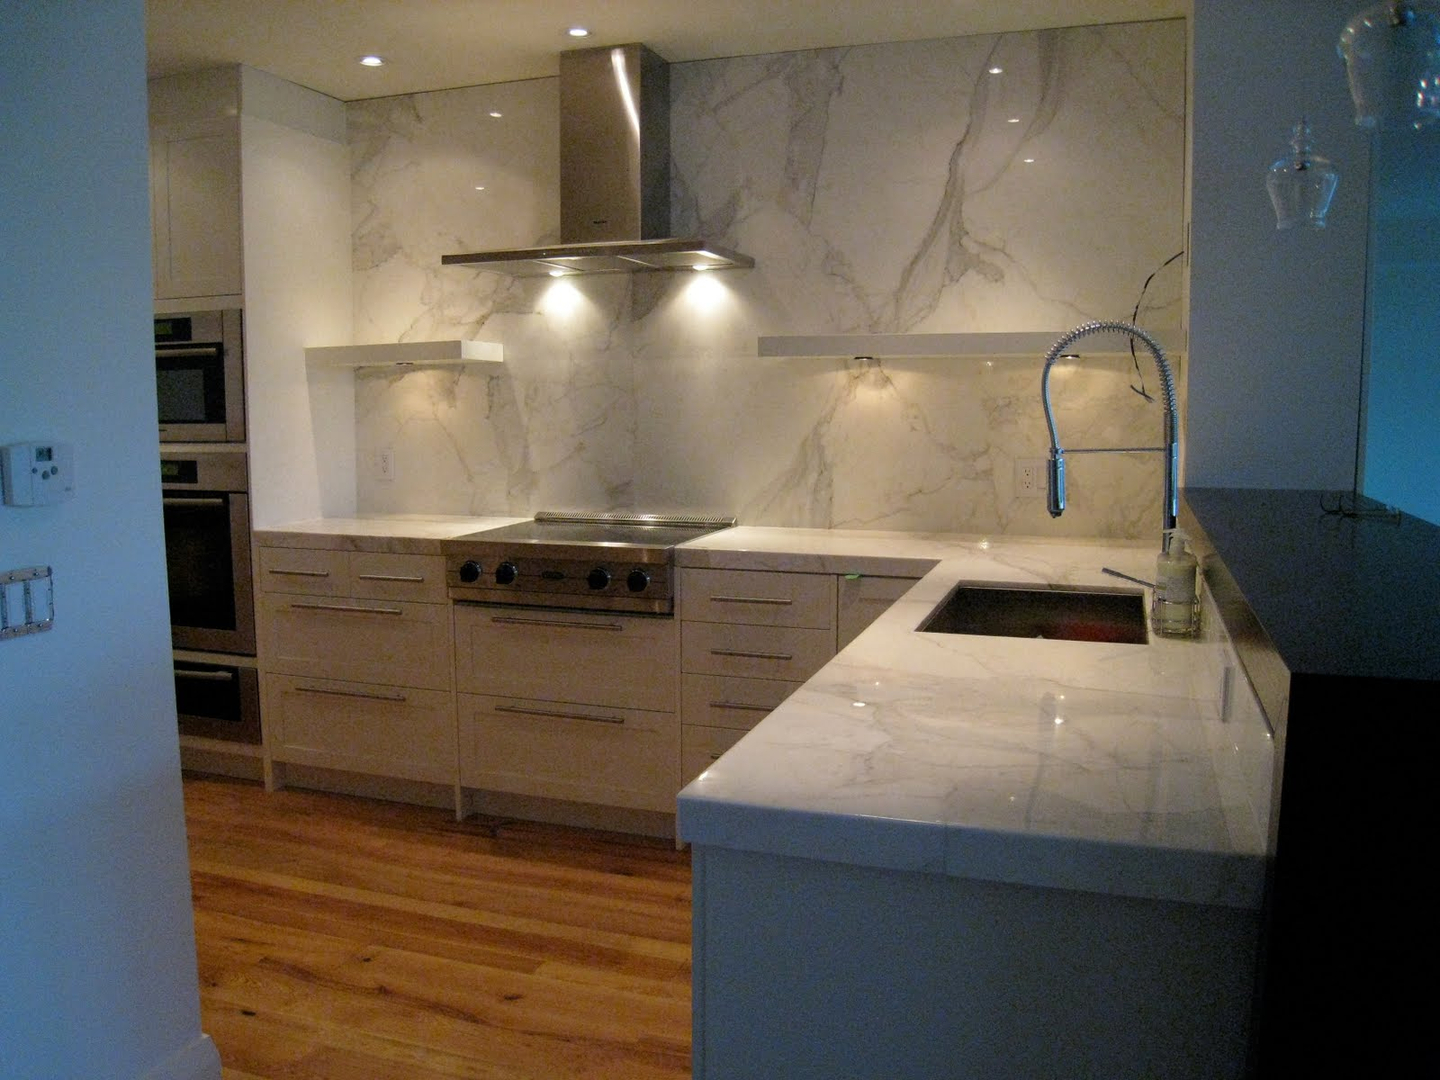 ikea kitchen cabinets installations in miami, broward & west palm